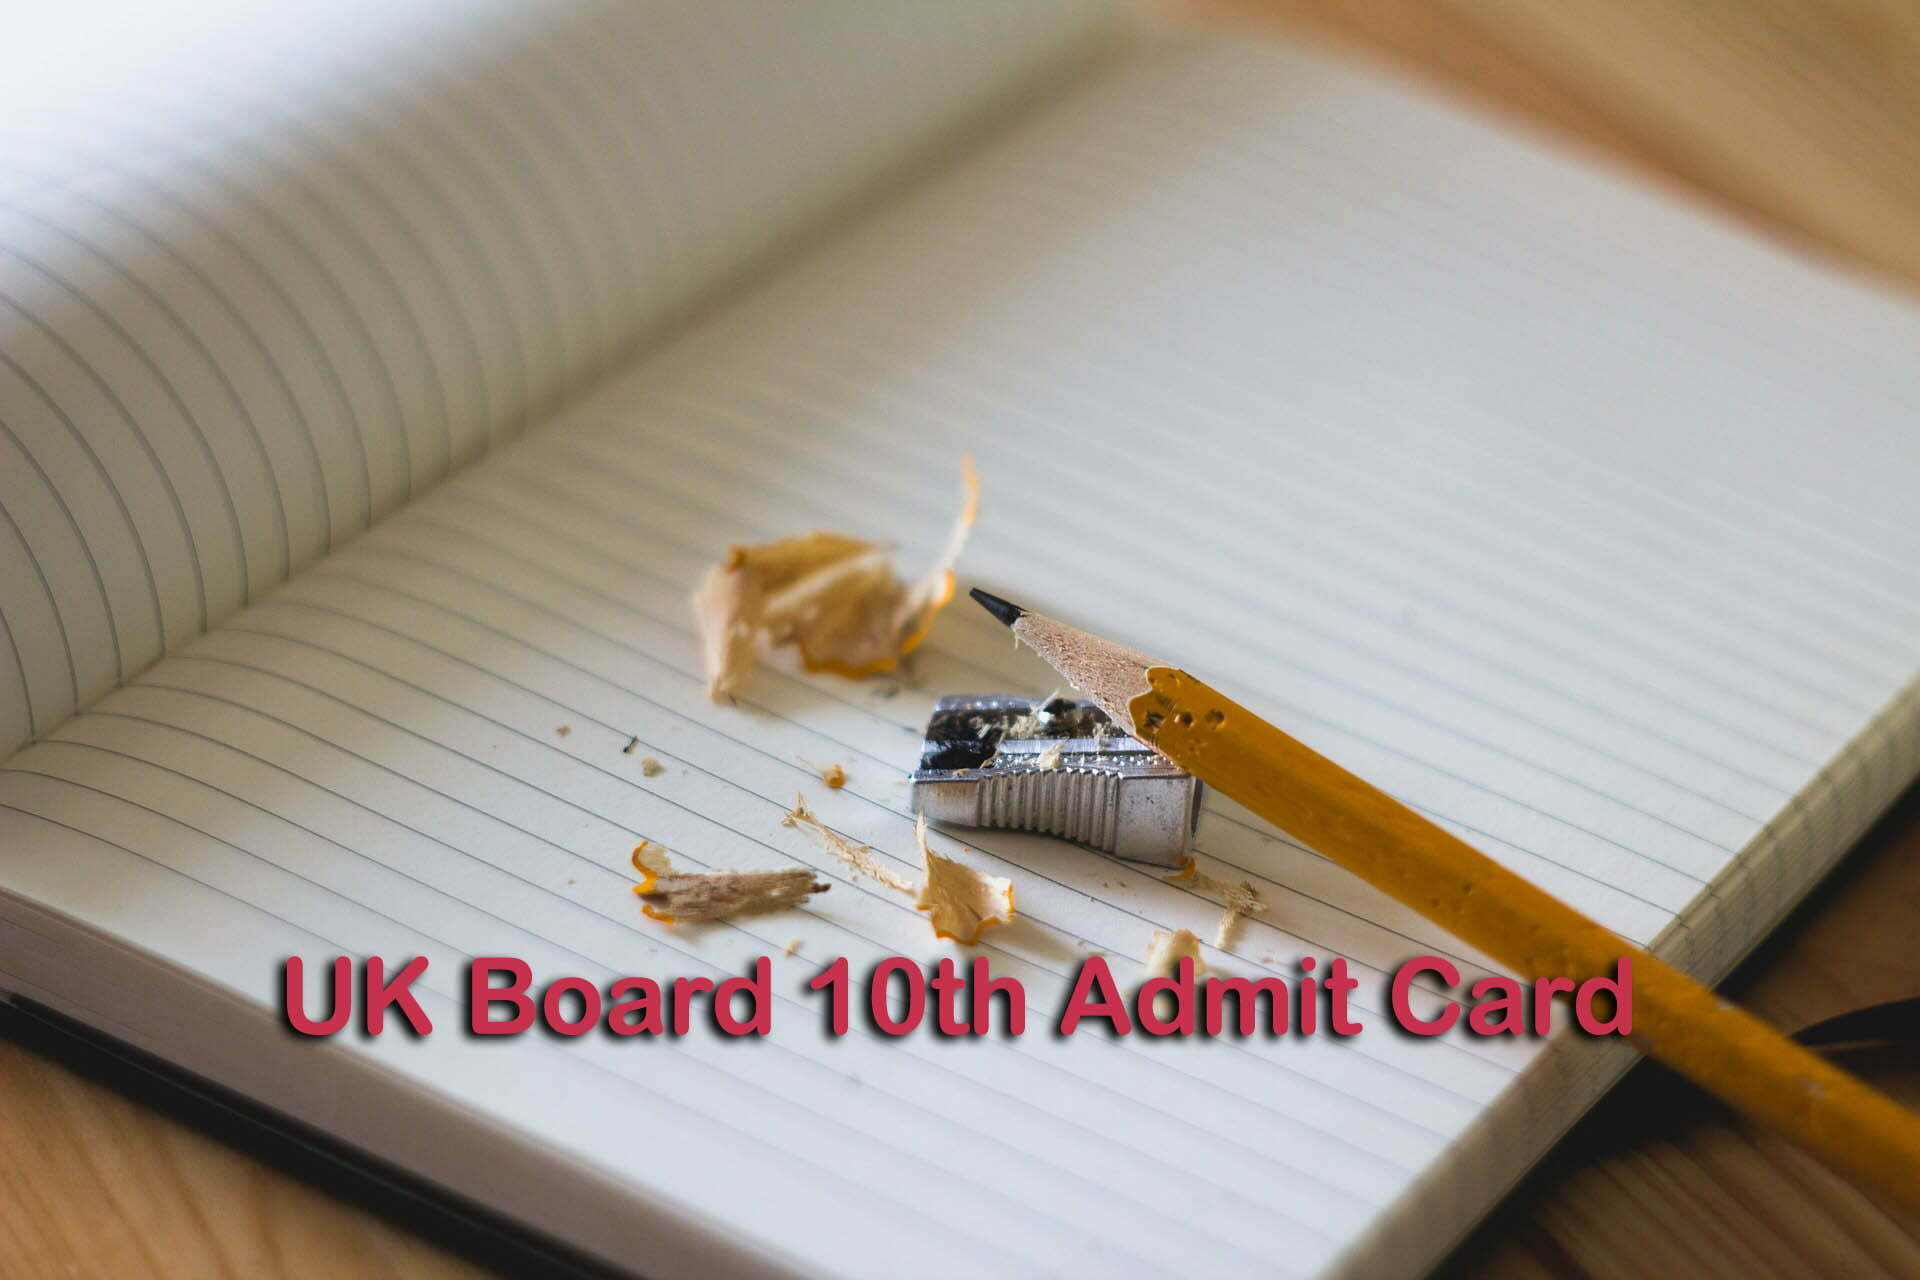 UK Board 10th Admit Card